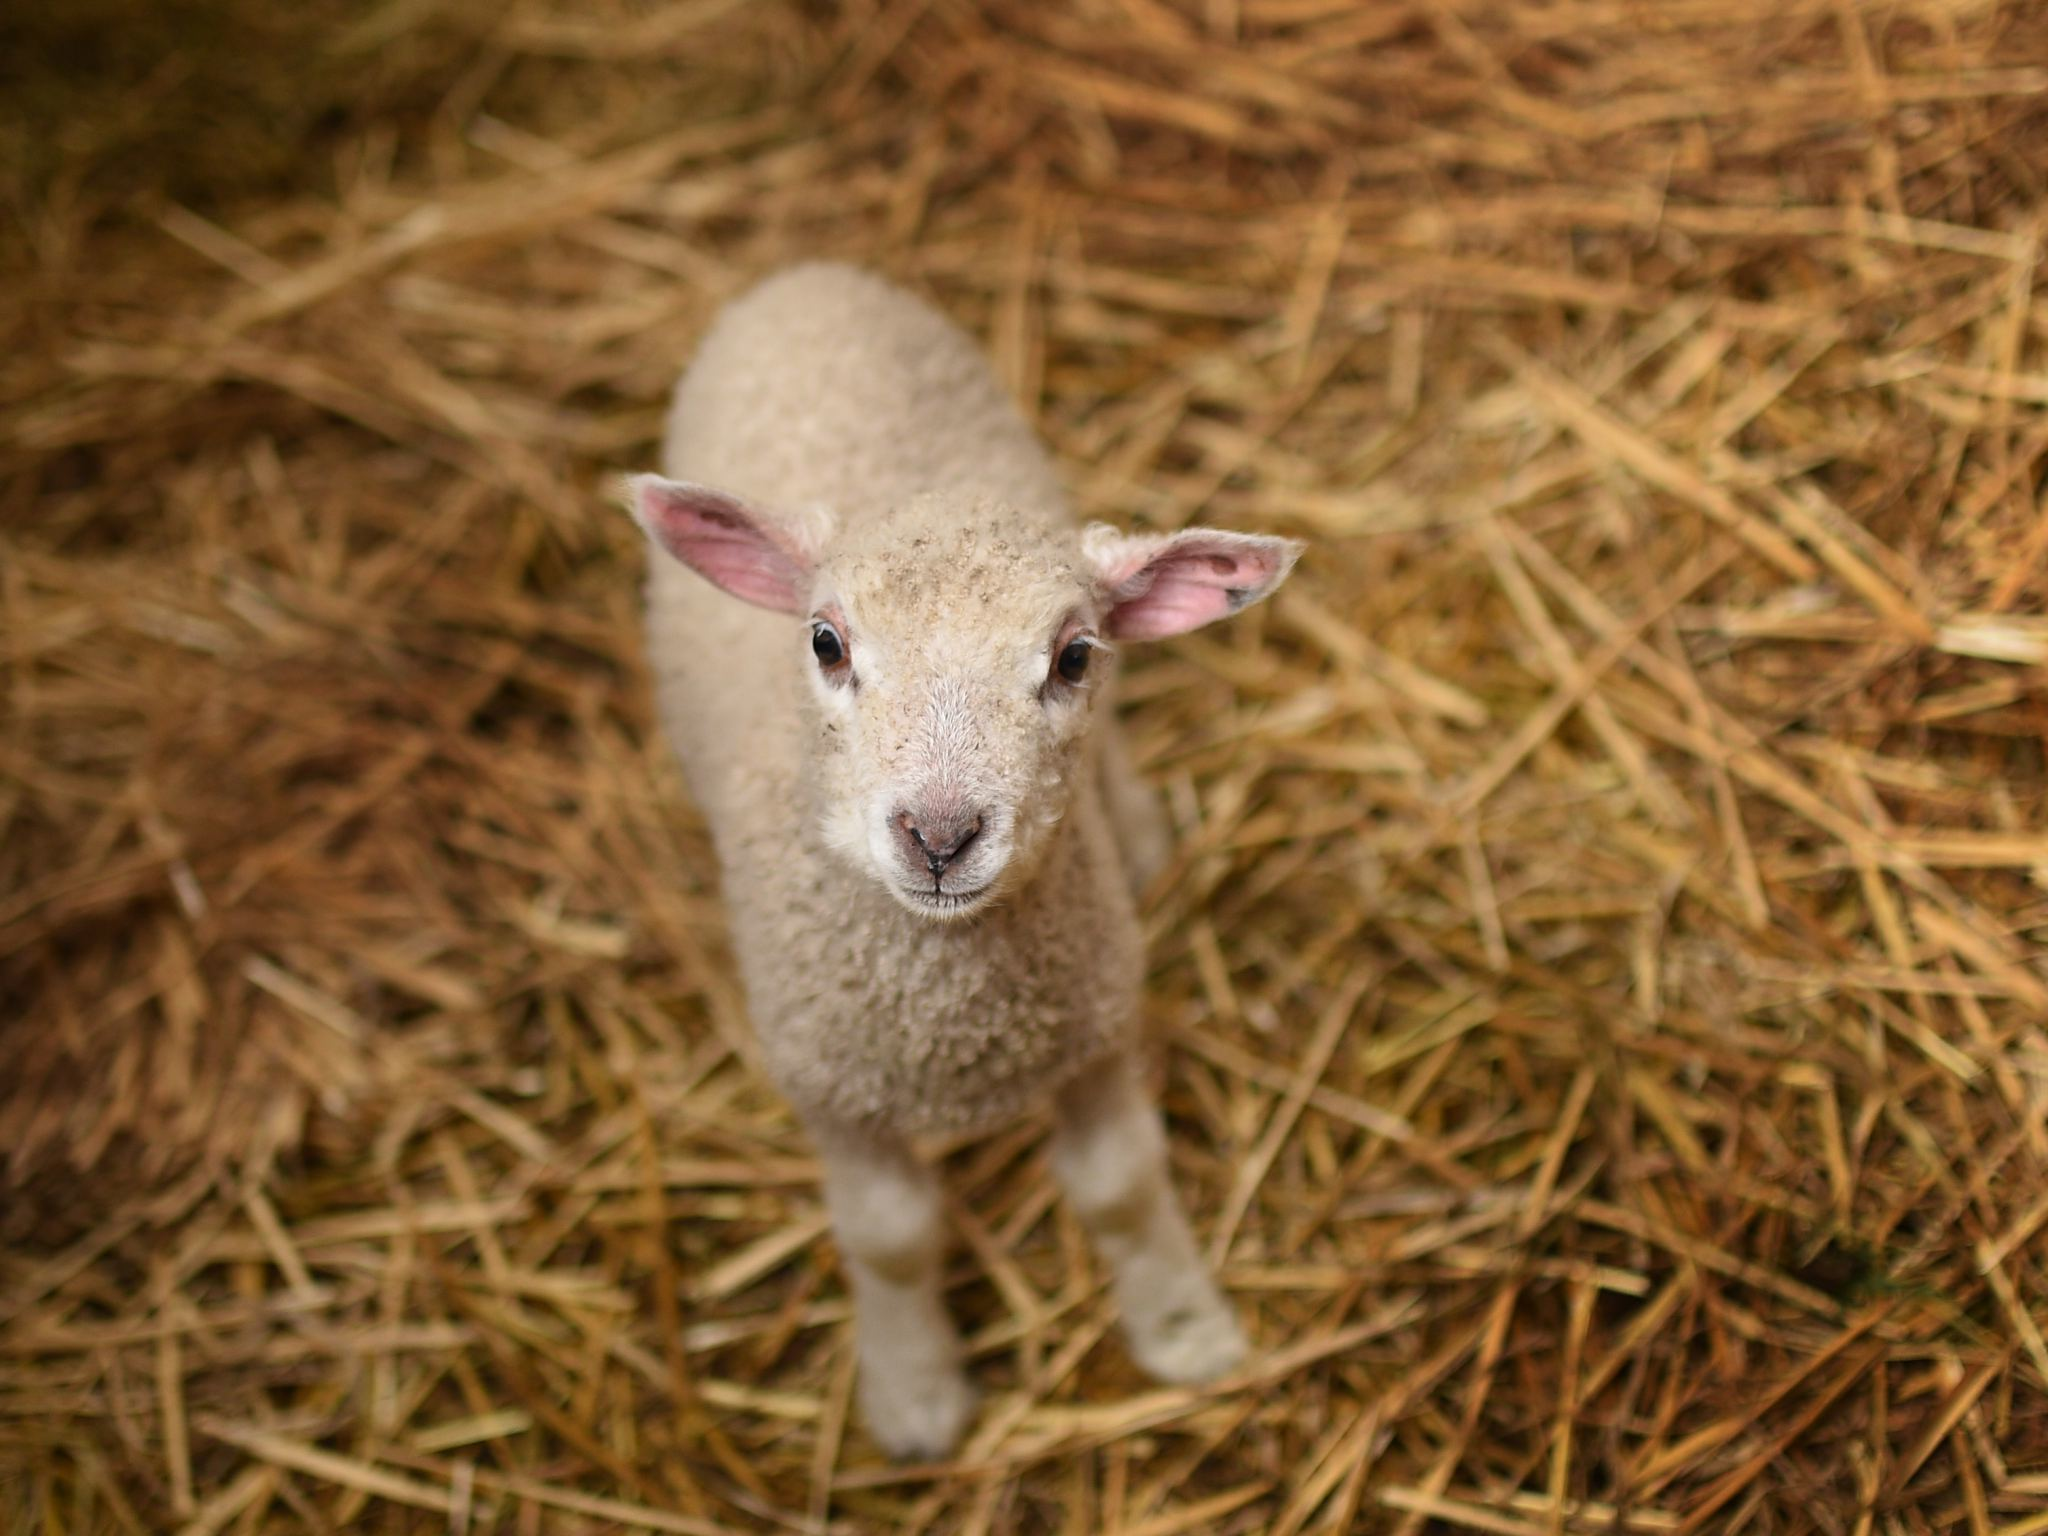 A lamb at the Collingwood Children's Farm